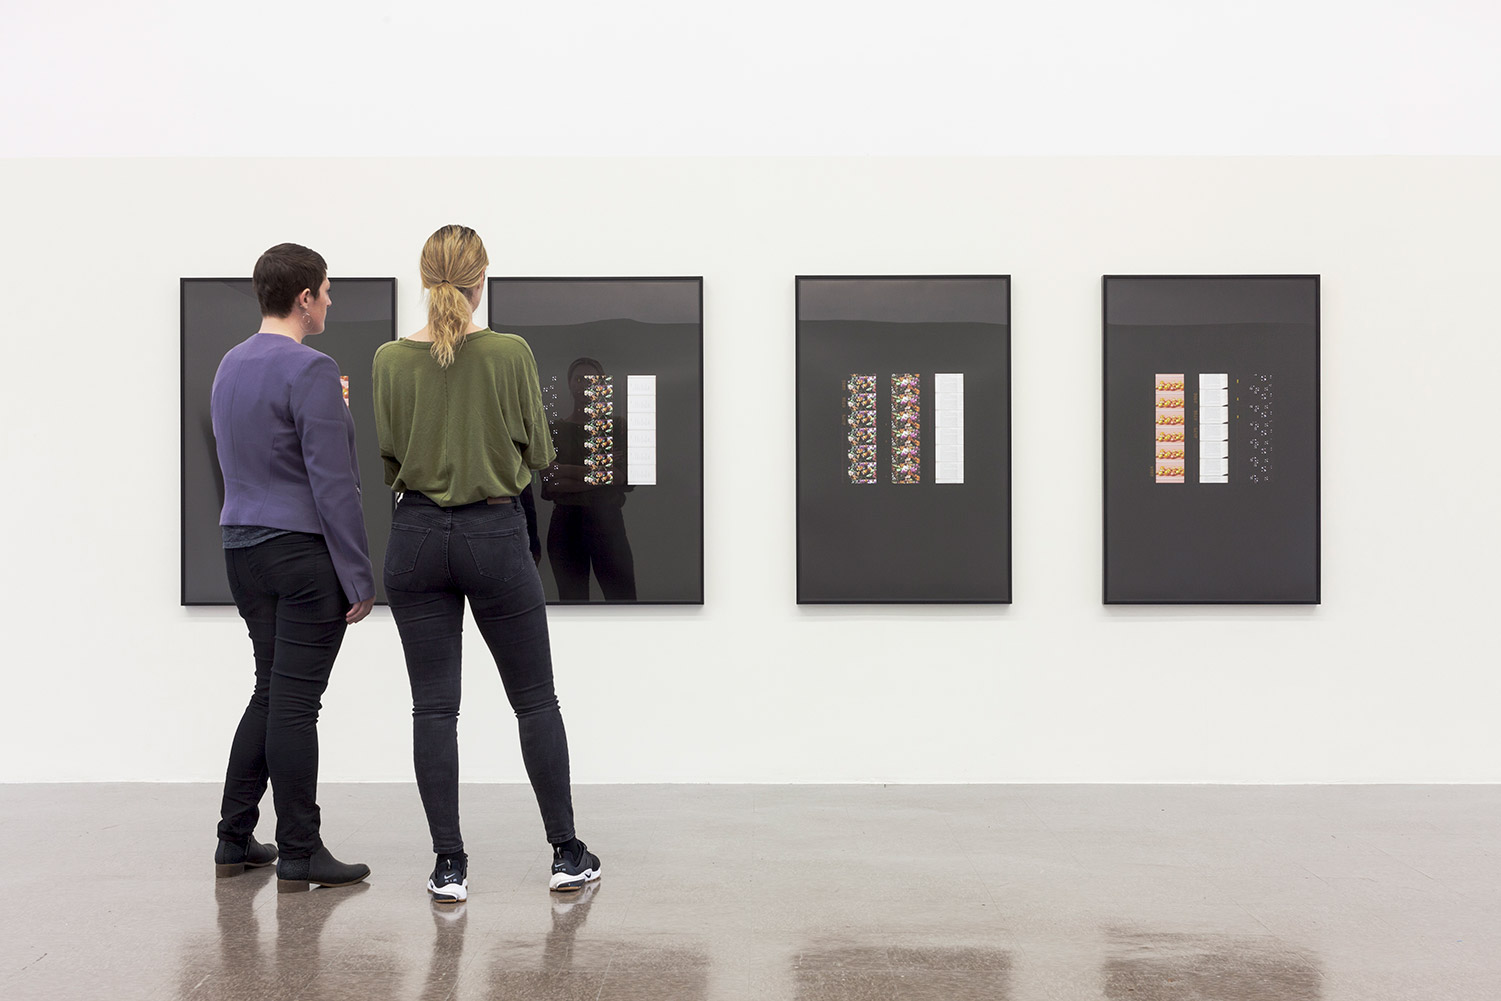 Visitors stand in front of four prints, each with three columns on a black background.